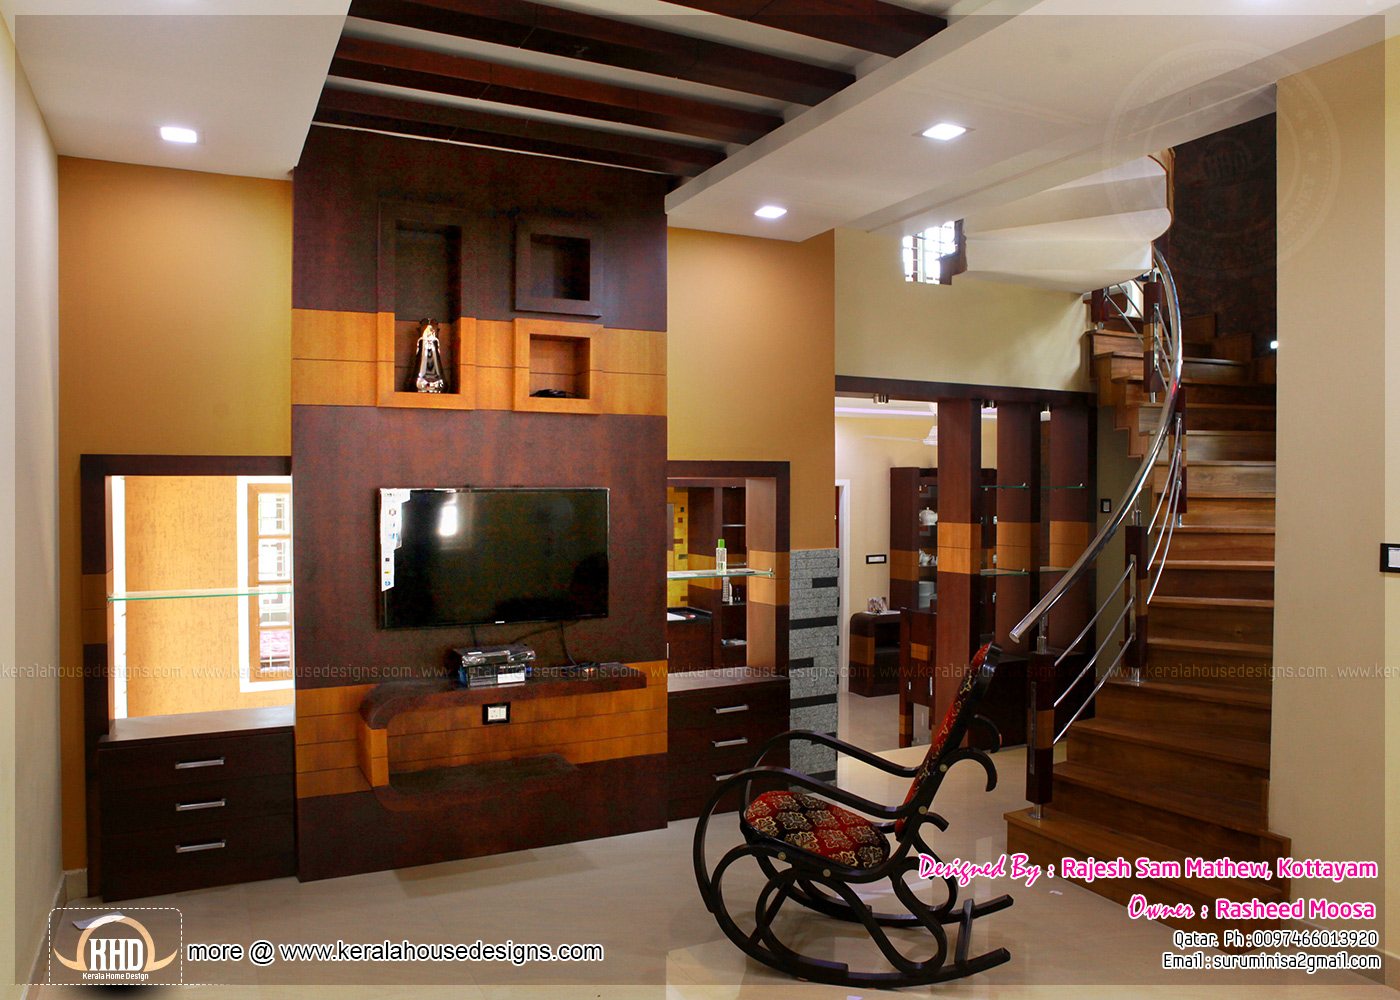 Kerala interior design with photos Kerala